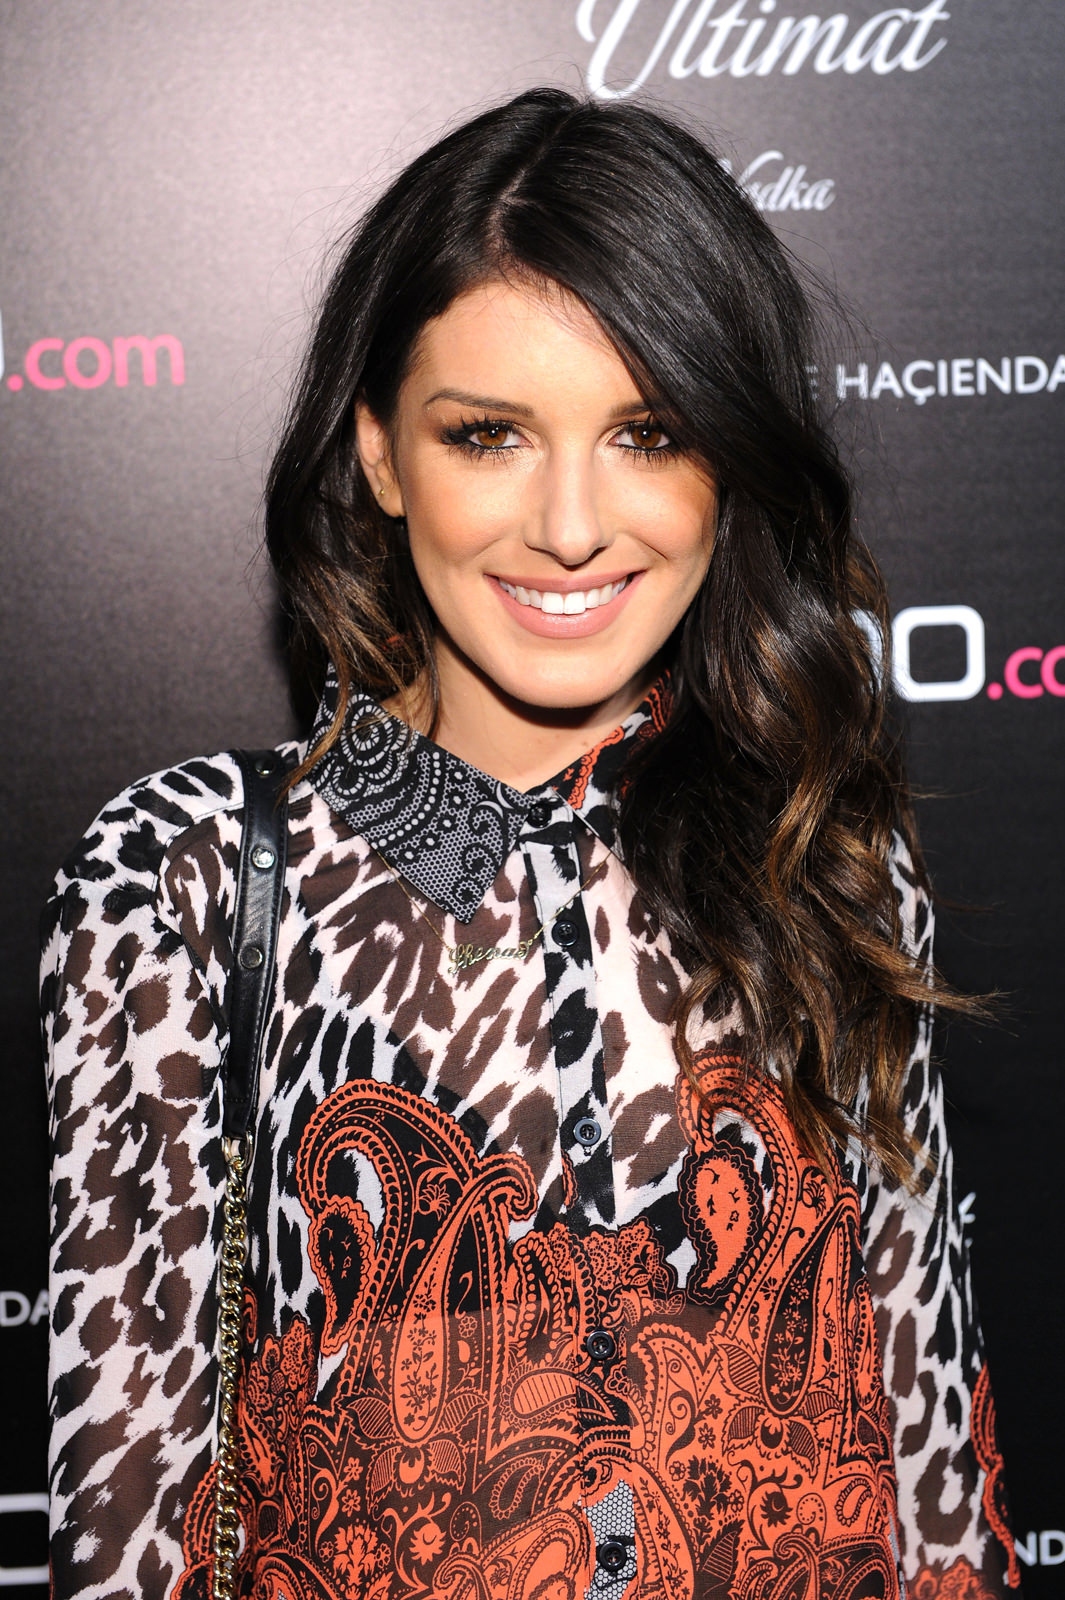 Shenae Grimes Photo Gallery